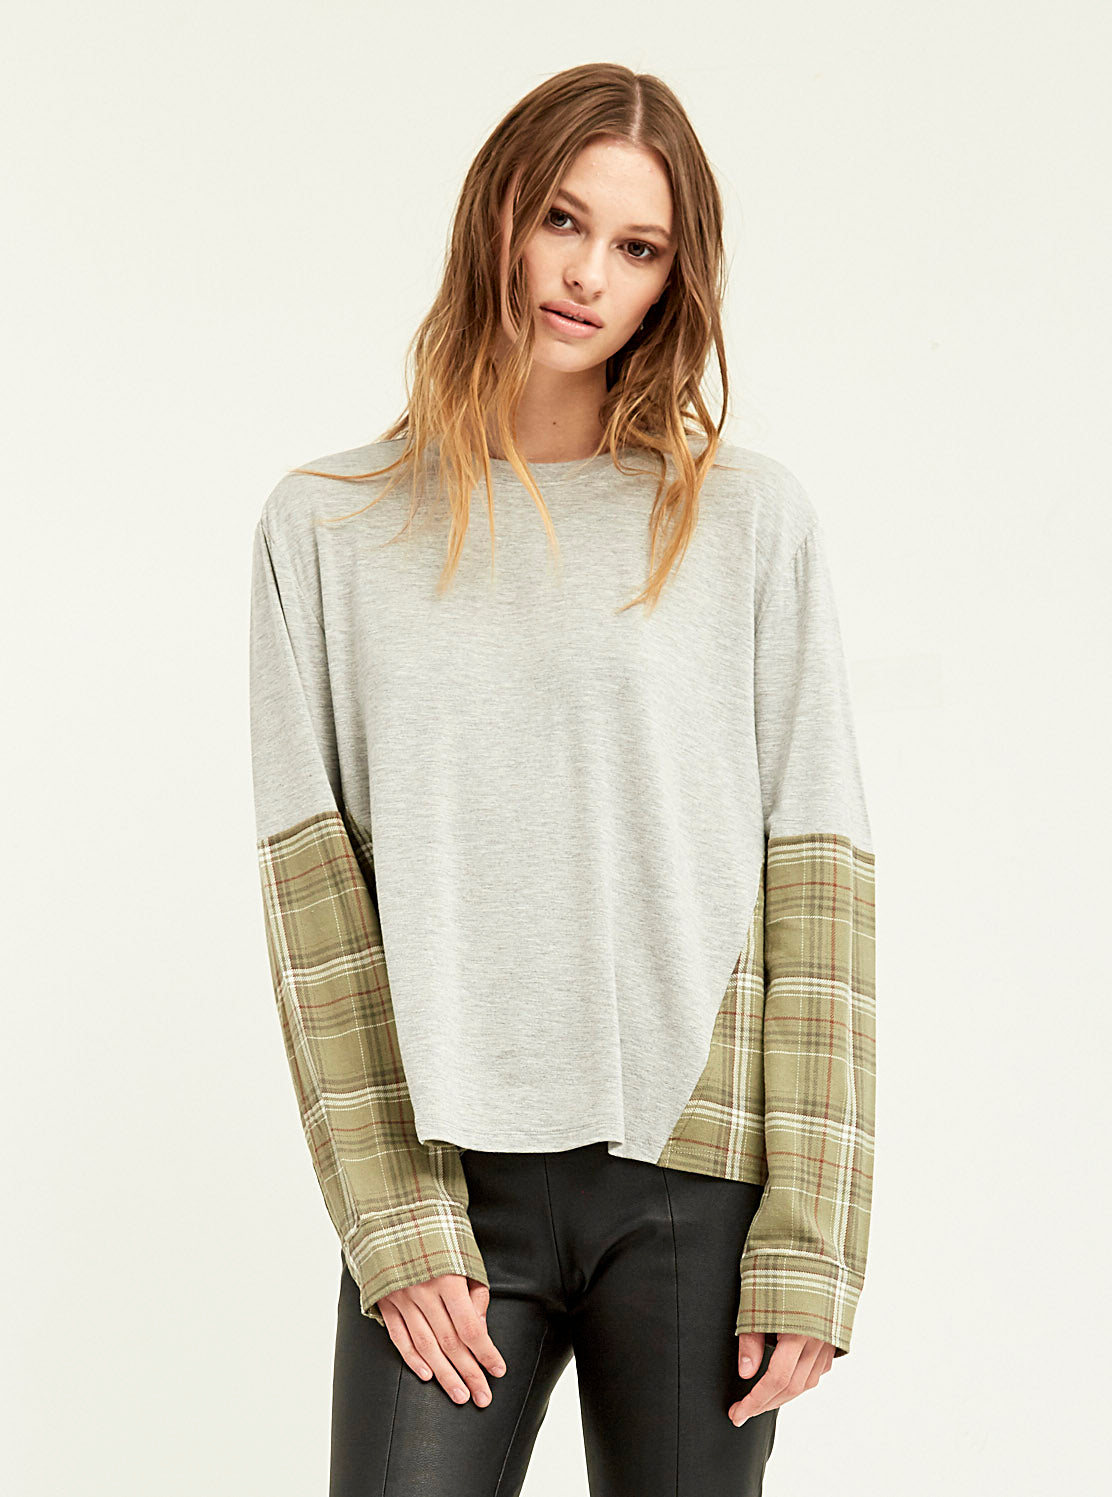 Flannel Blocked Cobain Sweatshirt - Boundless North Online Store